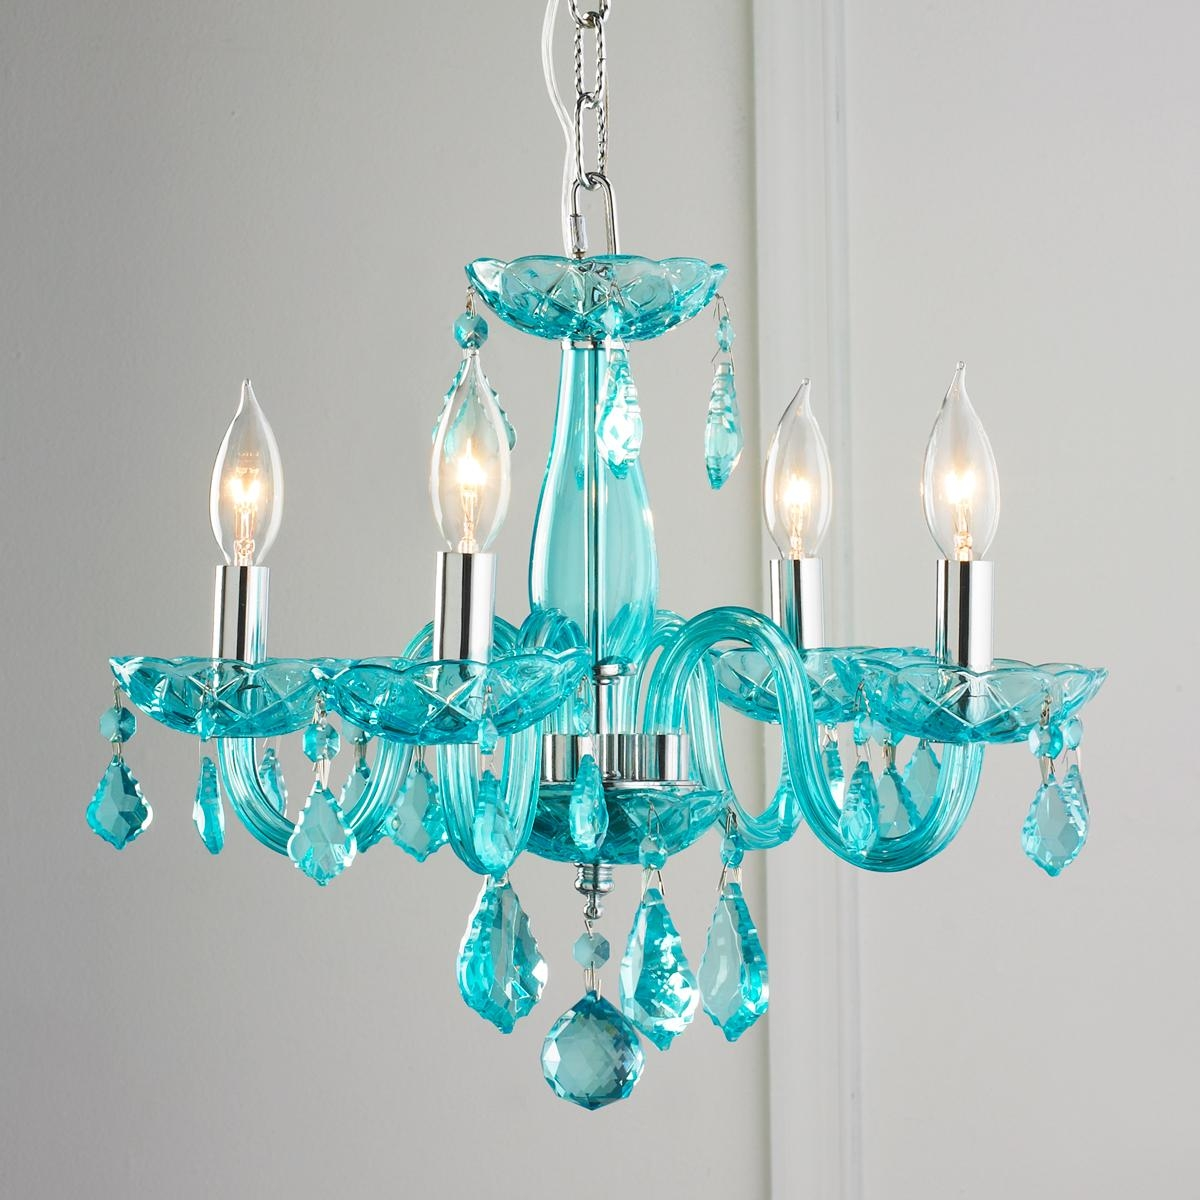 Color Crystal Mini Chandelier Mini Chandelier Ceiling Canopy Within Turquoise Chandelier Crystals (Image 14 of 25)